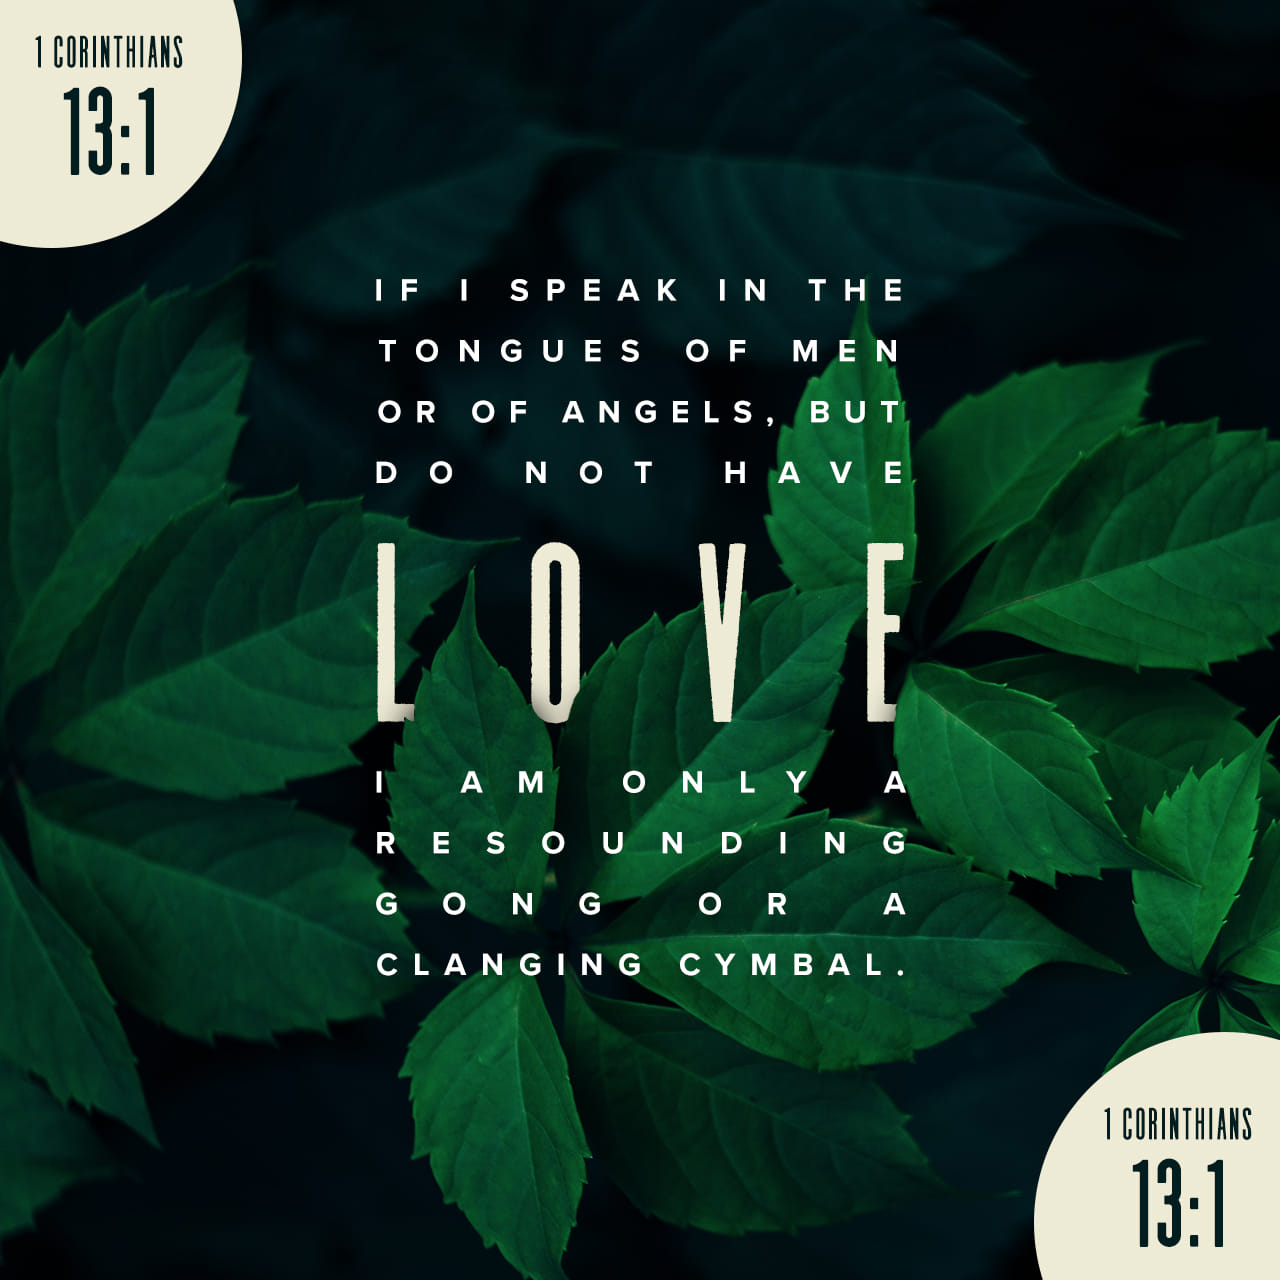 1 Corinthians 13:1 If I speak with the tongues of men and of angels, but do not have love, I have become a noisy gong or a clanging cymbal. | New American Standard Bible (NASB) | Descargar la Biblia App ahora